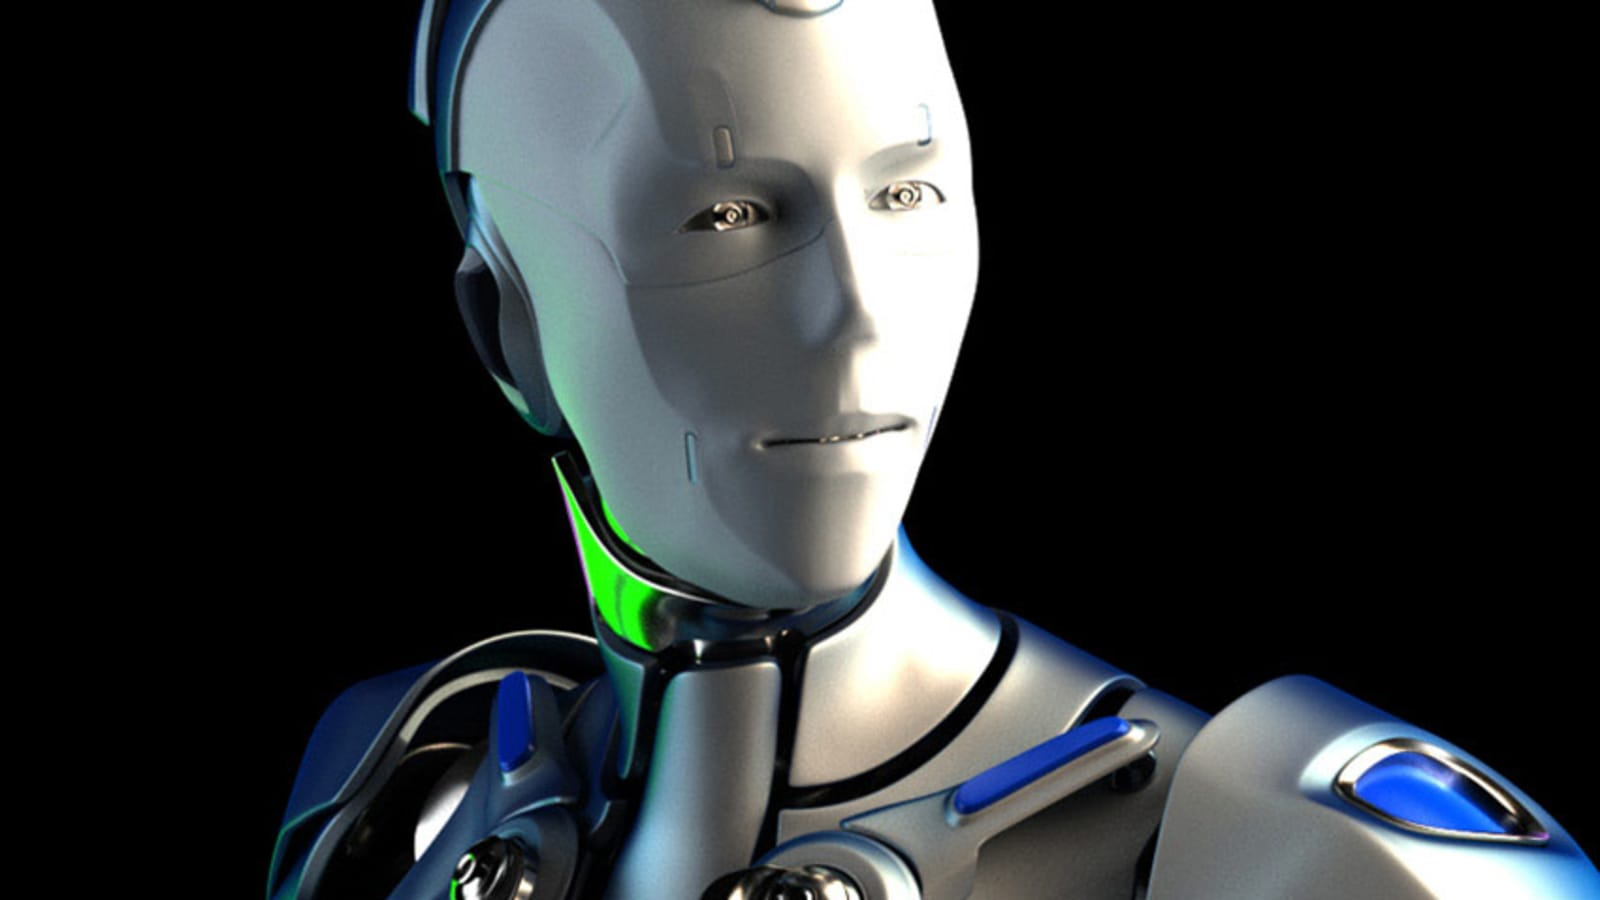 Your Next Coworker Soon May Be An Avatar Humanoid Robot